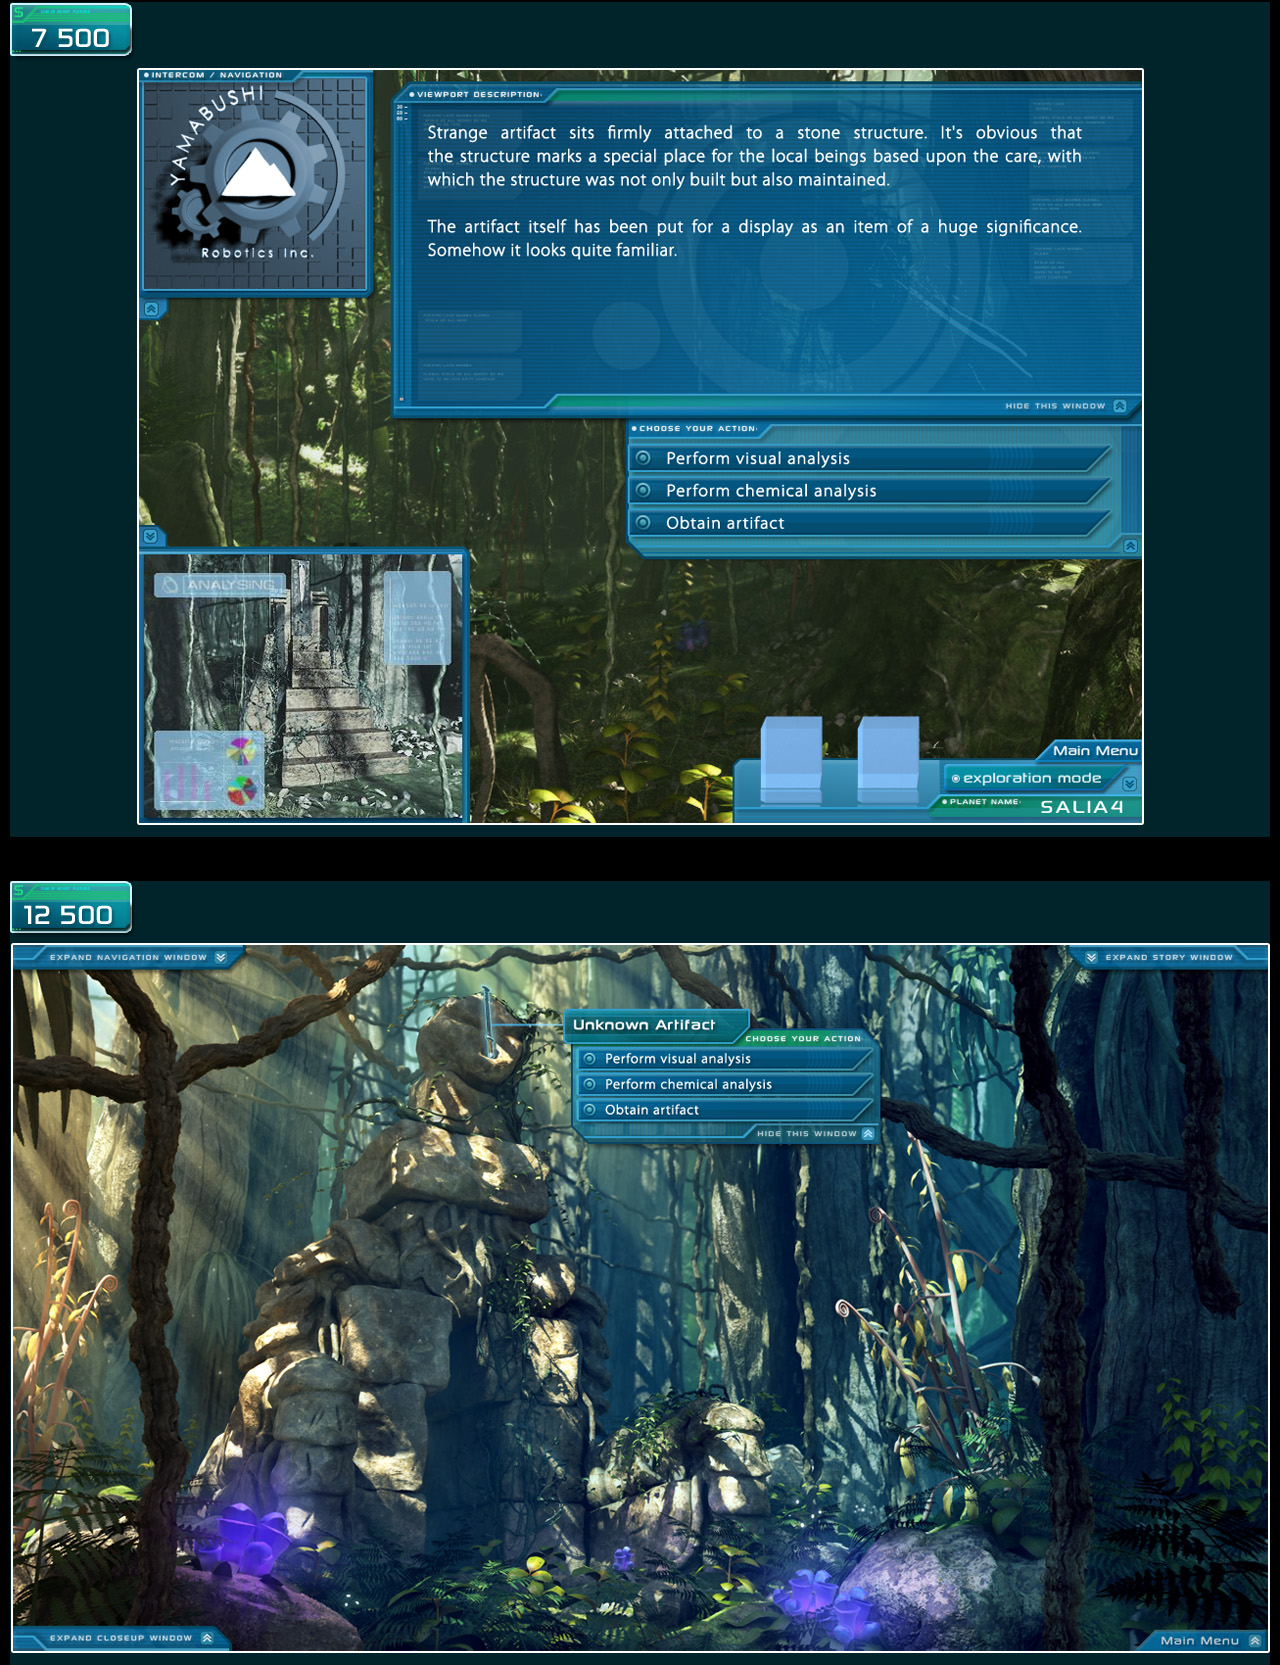 Comparison of visual levels between sotry expansion and full screen exploration stretch goal